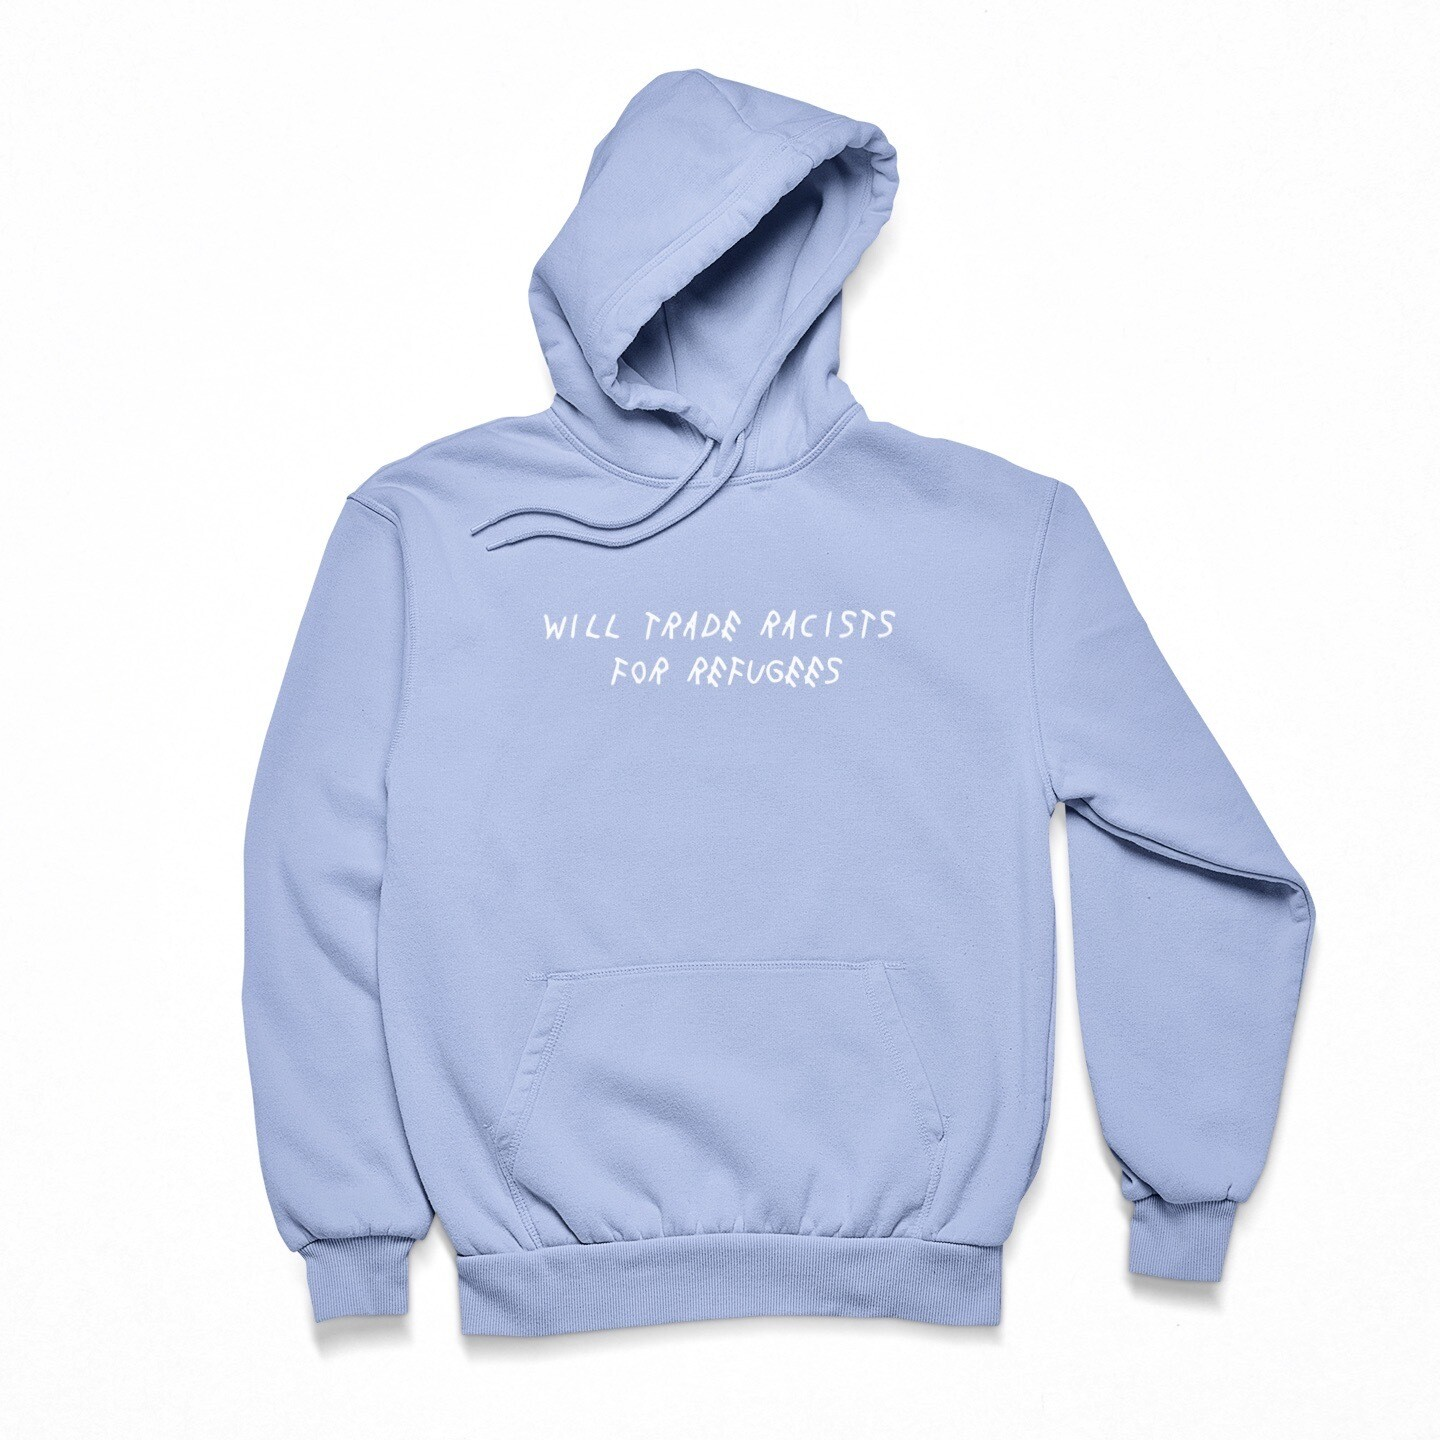 Trade Racists For Refugees Hoodie